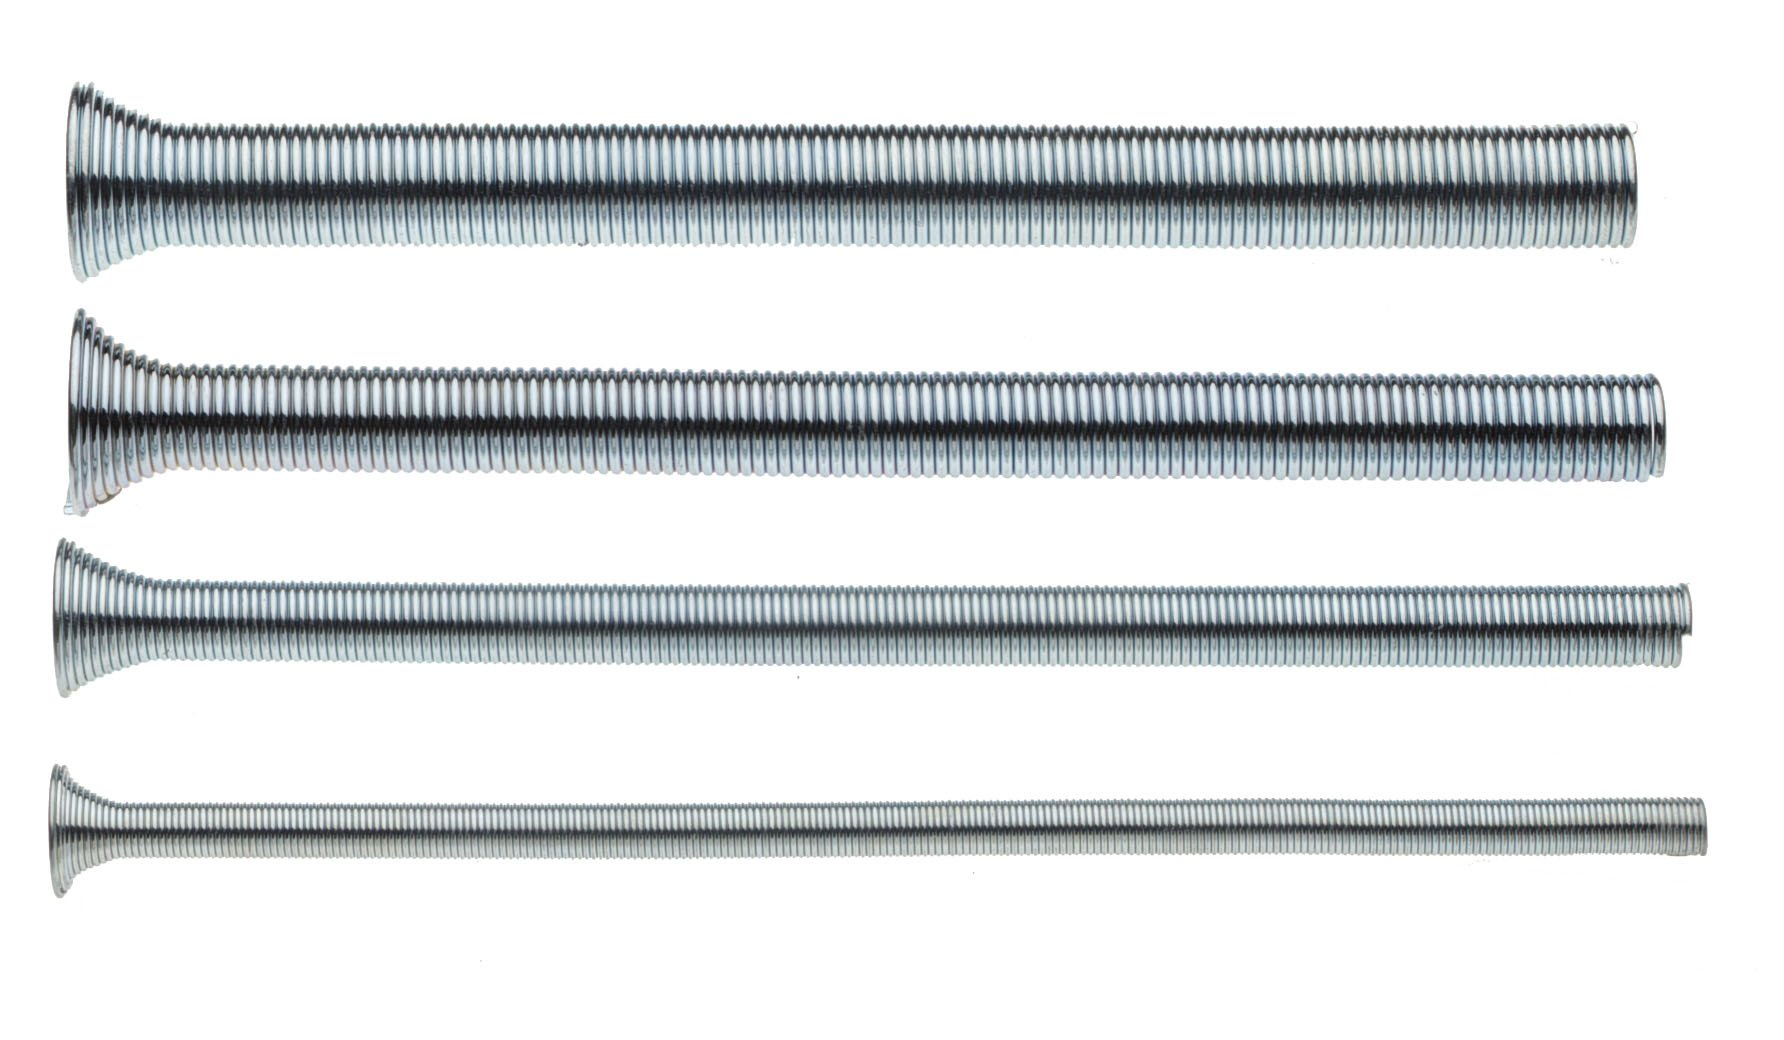 Superior Tool 61600 Spring Tube Bender 4-pc. Set,-1/4'' 3/8'' 1/2'' and 5/8'' Tube Bender Set